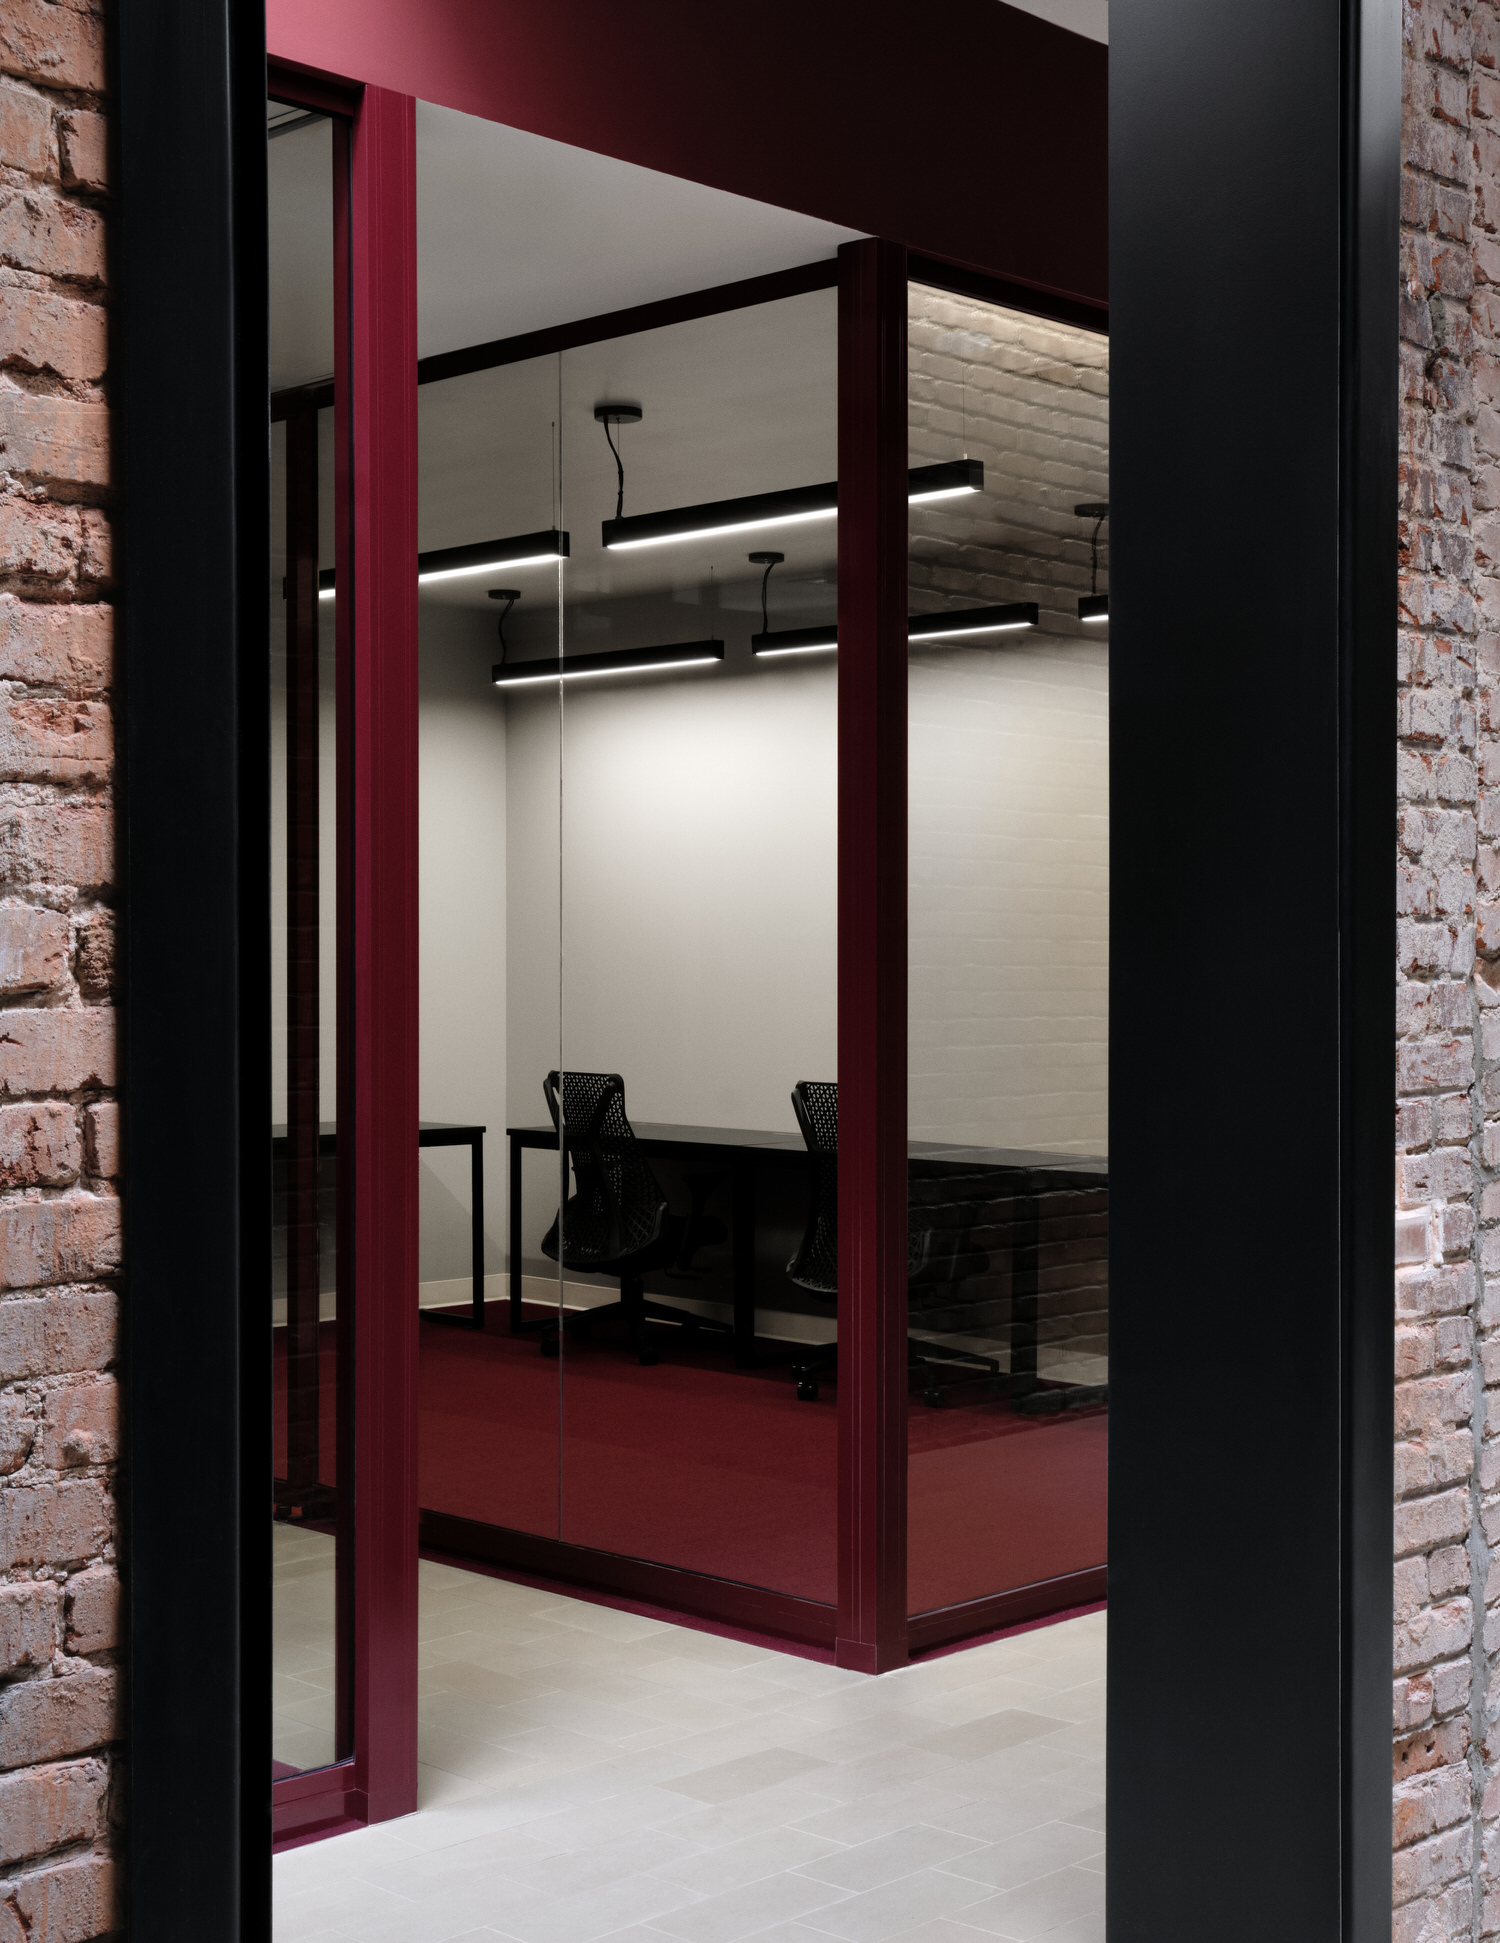 Ivy Studio Spacial Coworking Office Montreal Photo Alex Lesage Yellowtrace 17